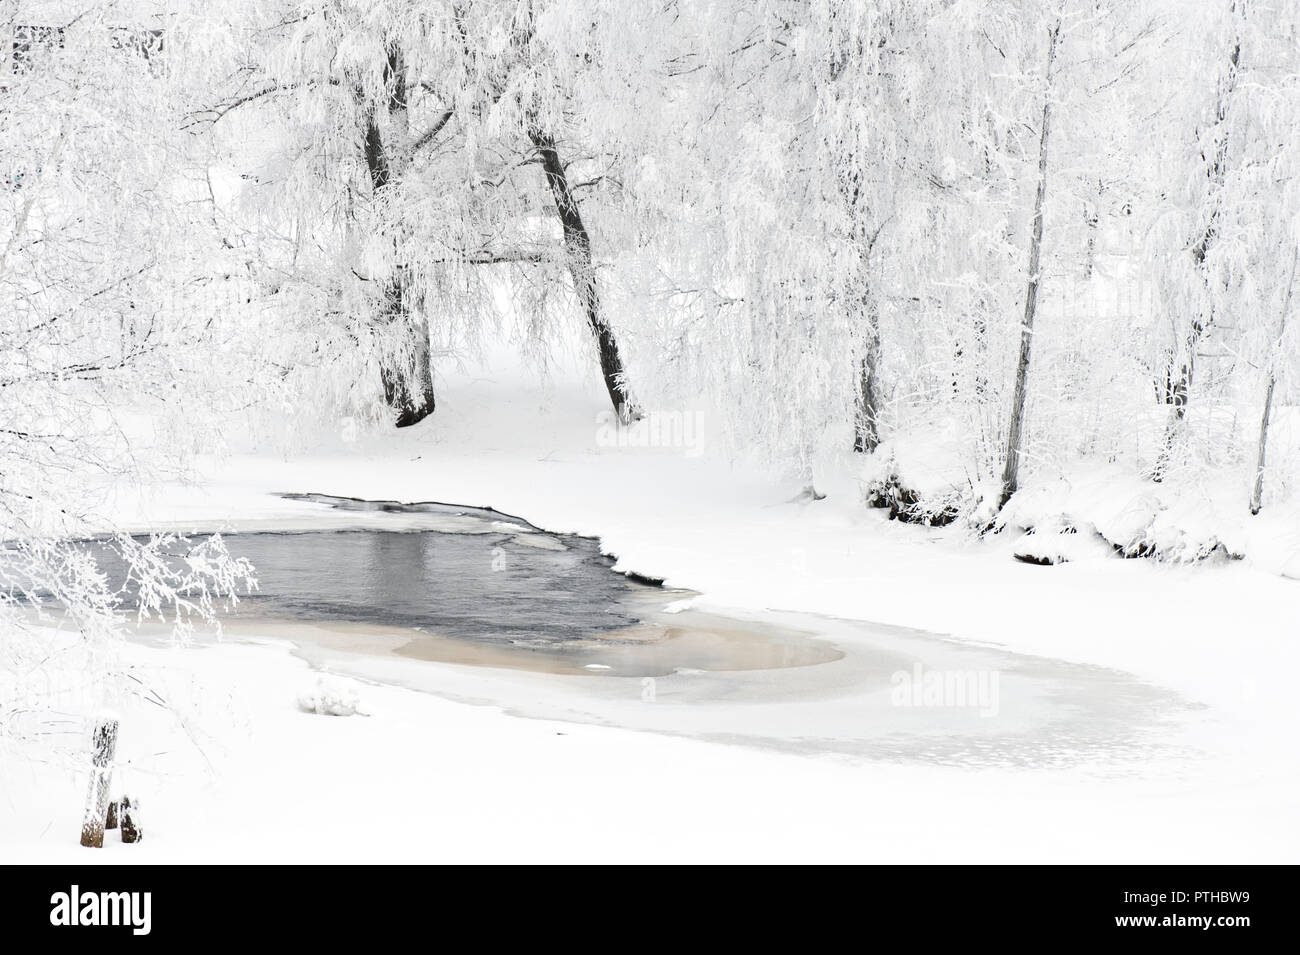 Winter river scenery with frost covered trees on riverbank. - Stock Image